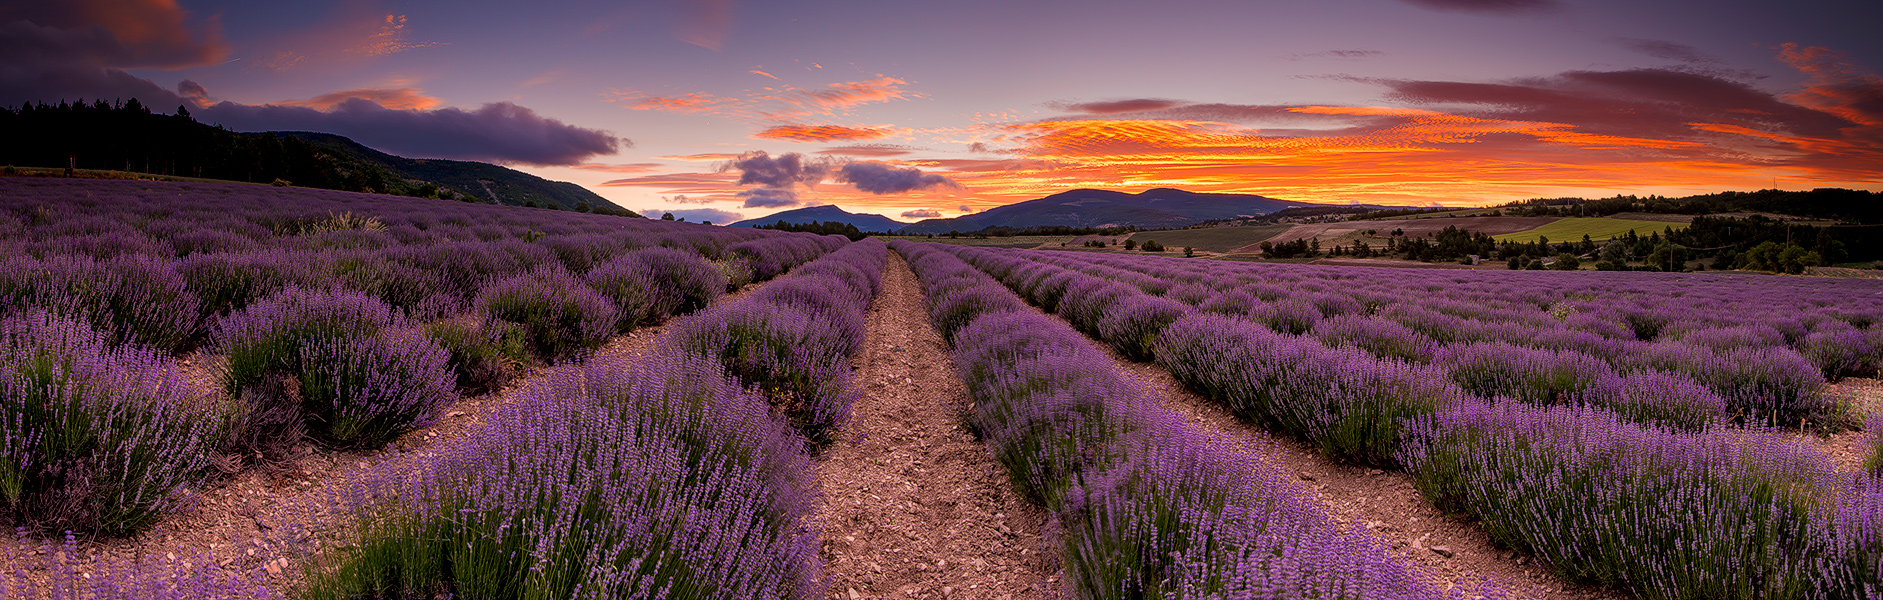 The perfect Lavenderfield in the Provence, France